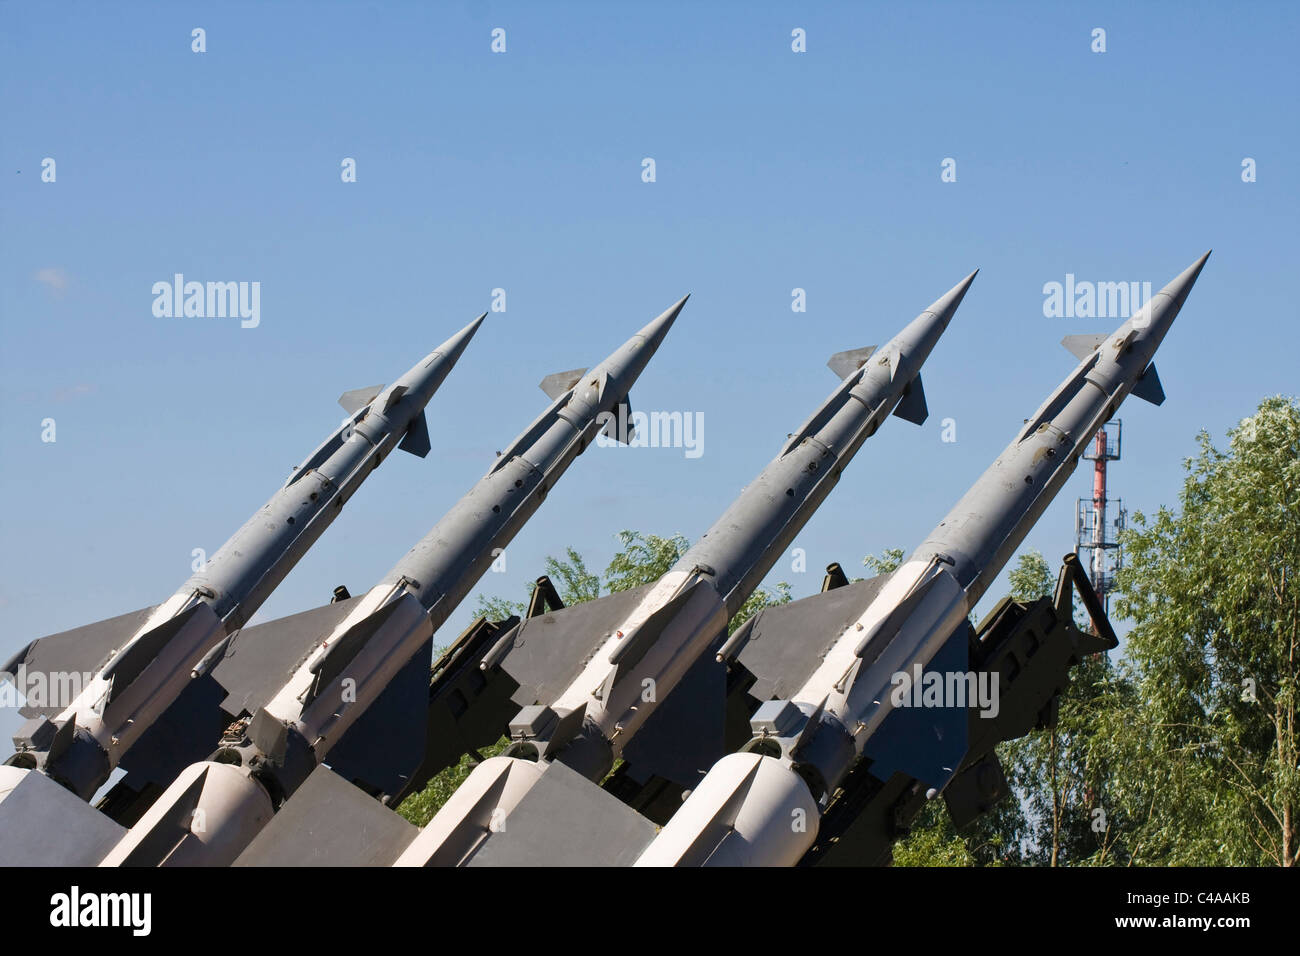 S-125 surface-to-air missile system, museum of military equipment - Stock Image